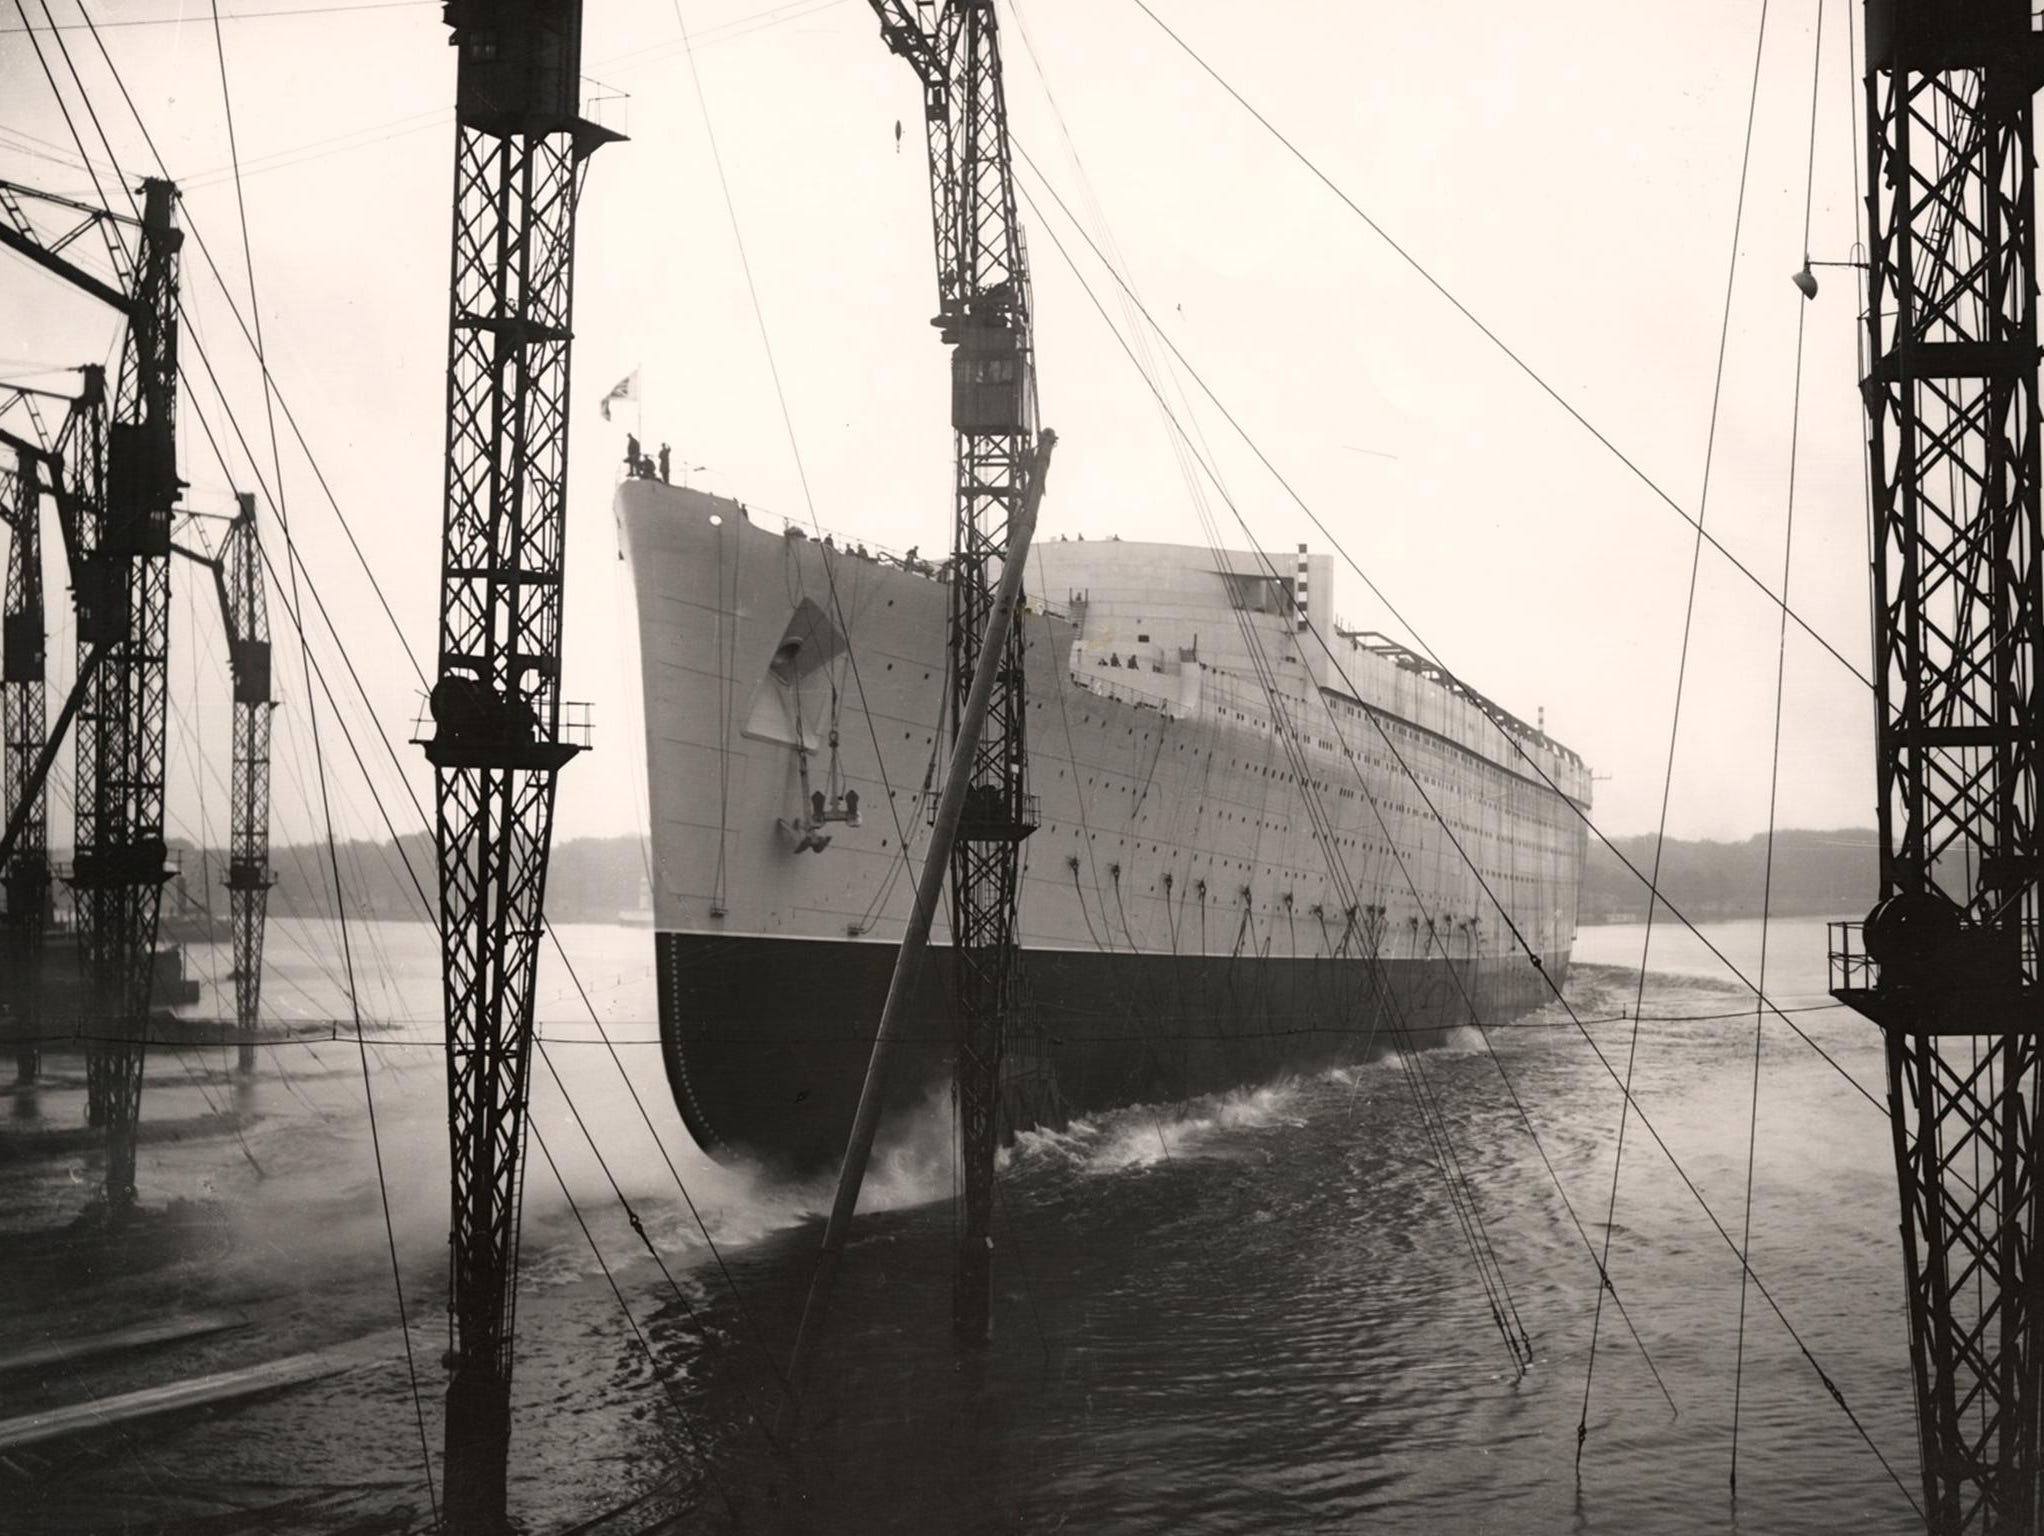 On September 26, 1934, the ship was launched by namesake, HRH Queen Mary, who sent a bottle of Australian wine slamming into its hull. Thousands braved torrential rain to watch as the giant liner slid into the River Clyde.